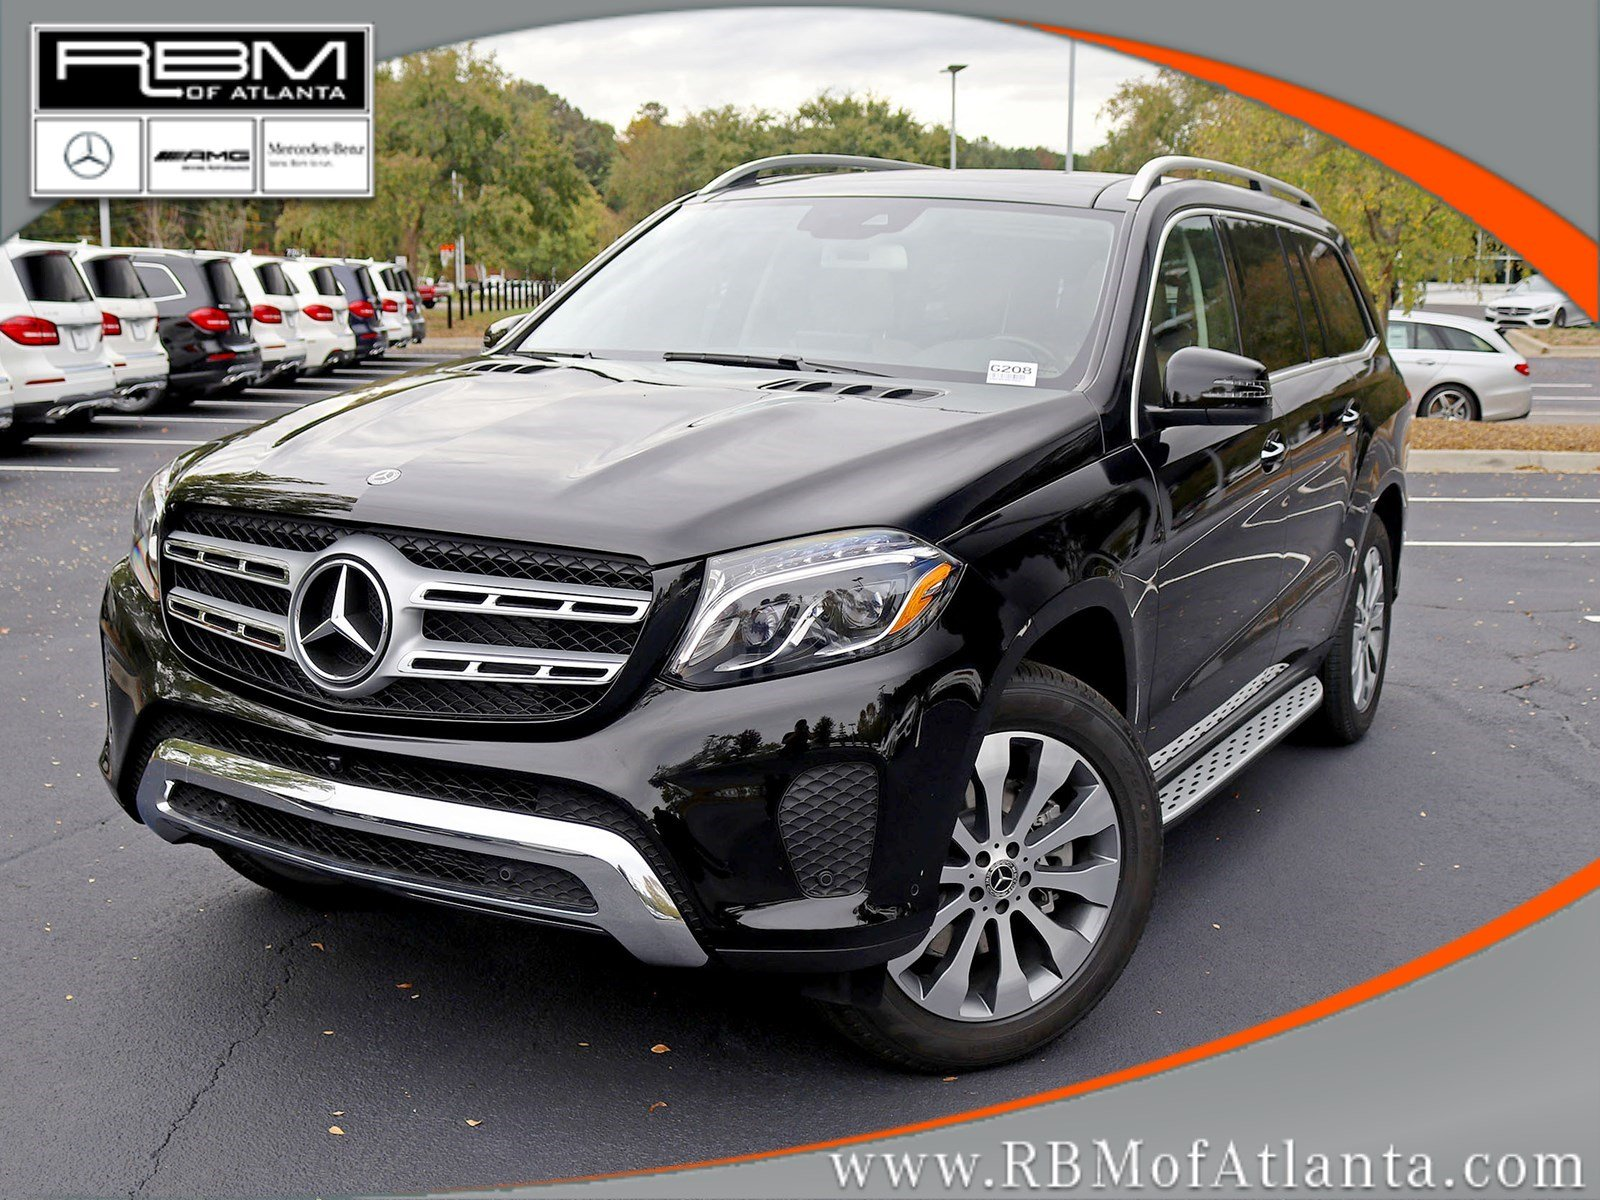 New 2019 Mercedes Benz GLS GLS 450 SUV in Atlanta G208